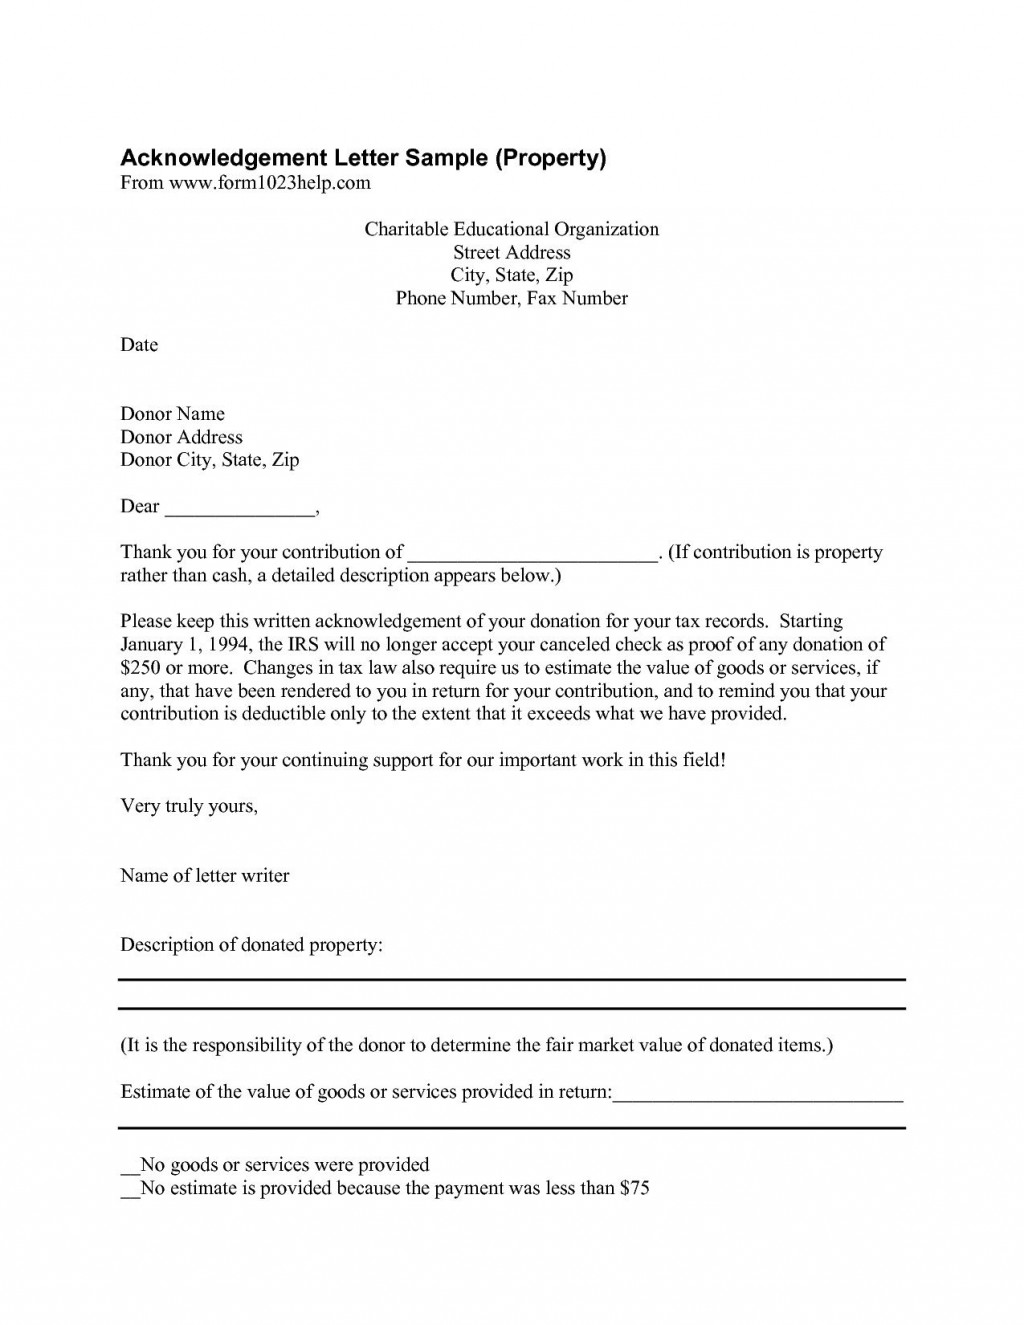 001 Wonderful Fund Raising Letter Template Photo  Templates Example Of Fundraising Appeal For Mission Trip UkLarge